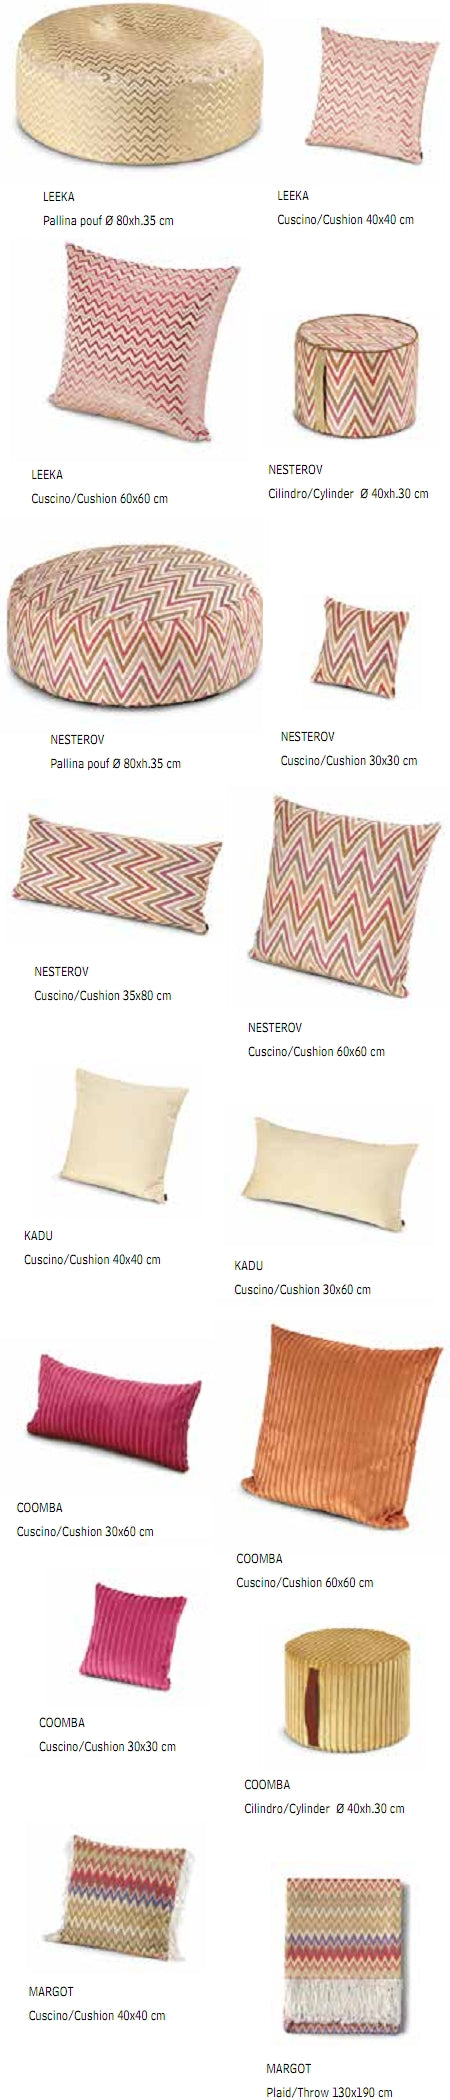 Missoni Cushion and Footstool Collection - Golden Age Soft - italydesign.com